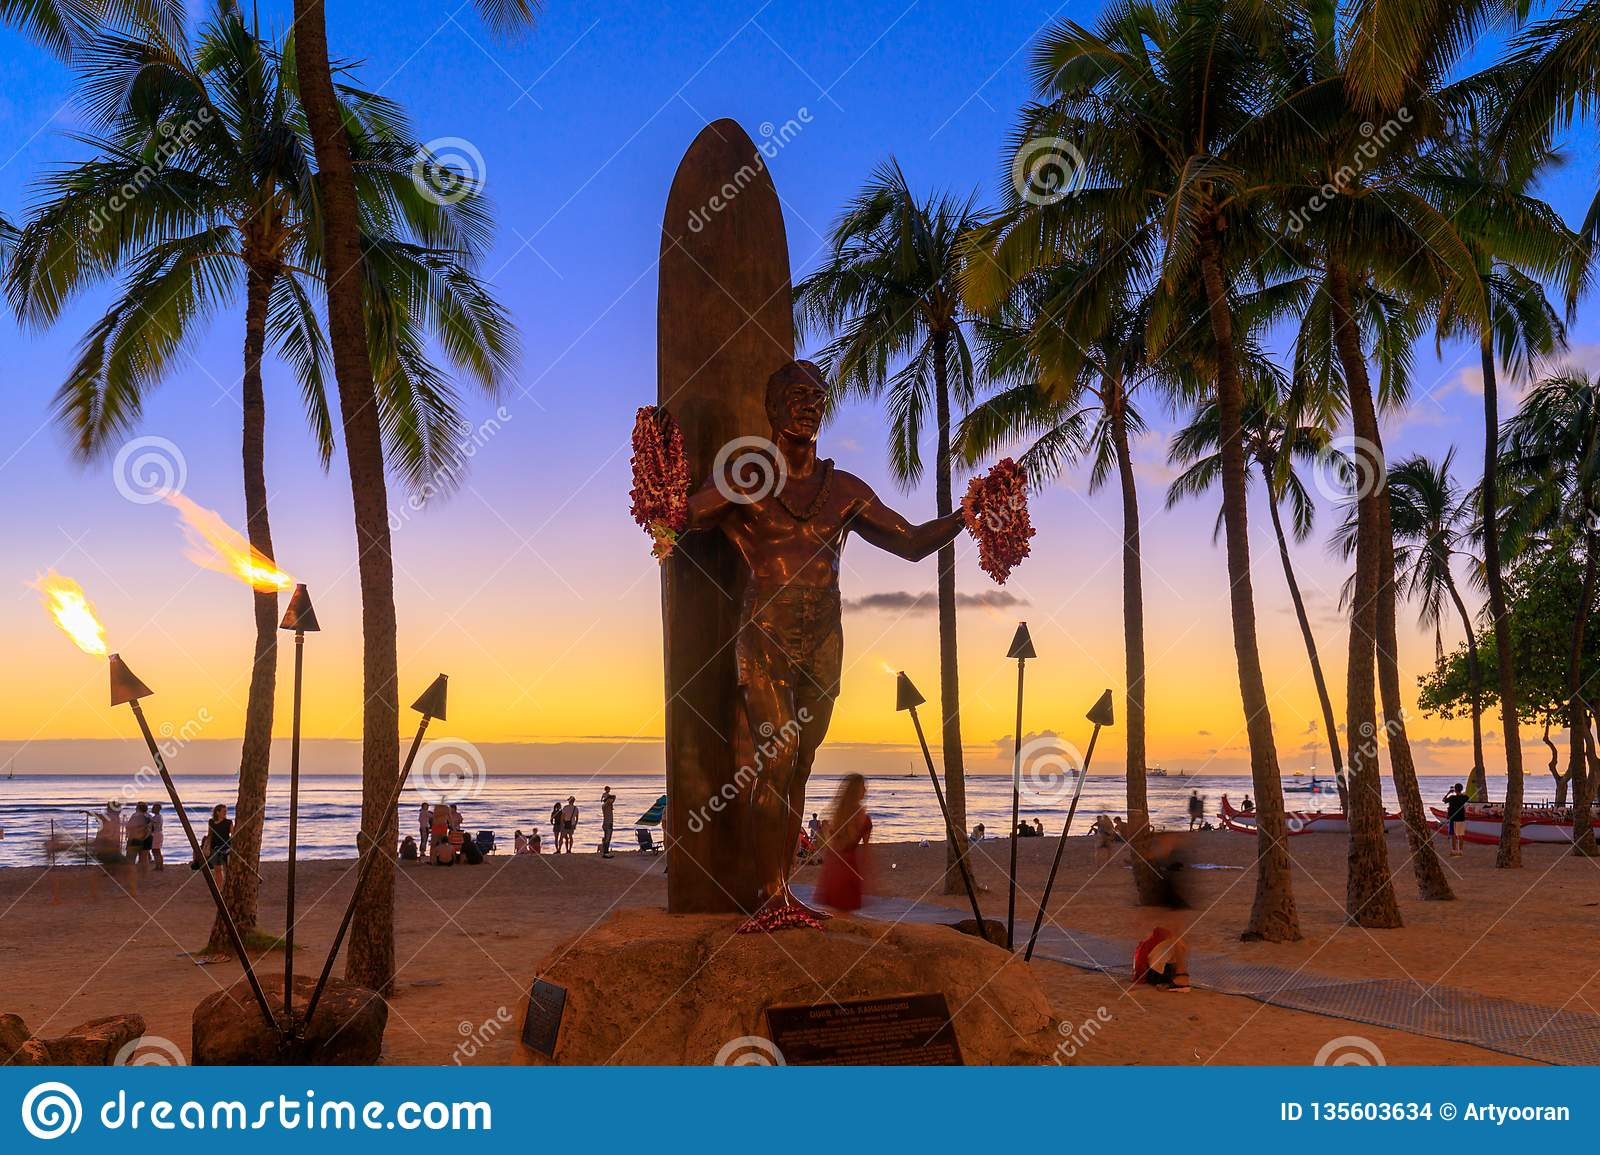 Duke Kahanamoku Iconic Statue At Sunset In Waikiki Beach